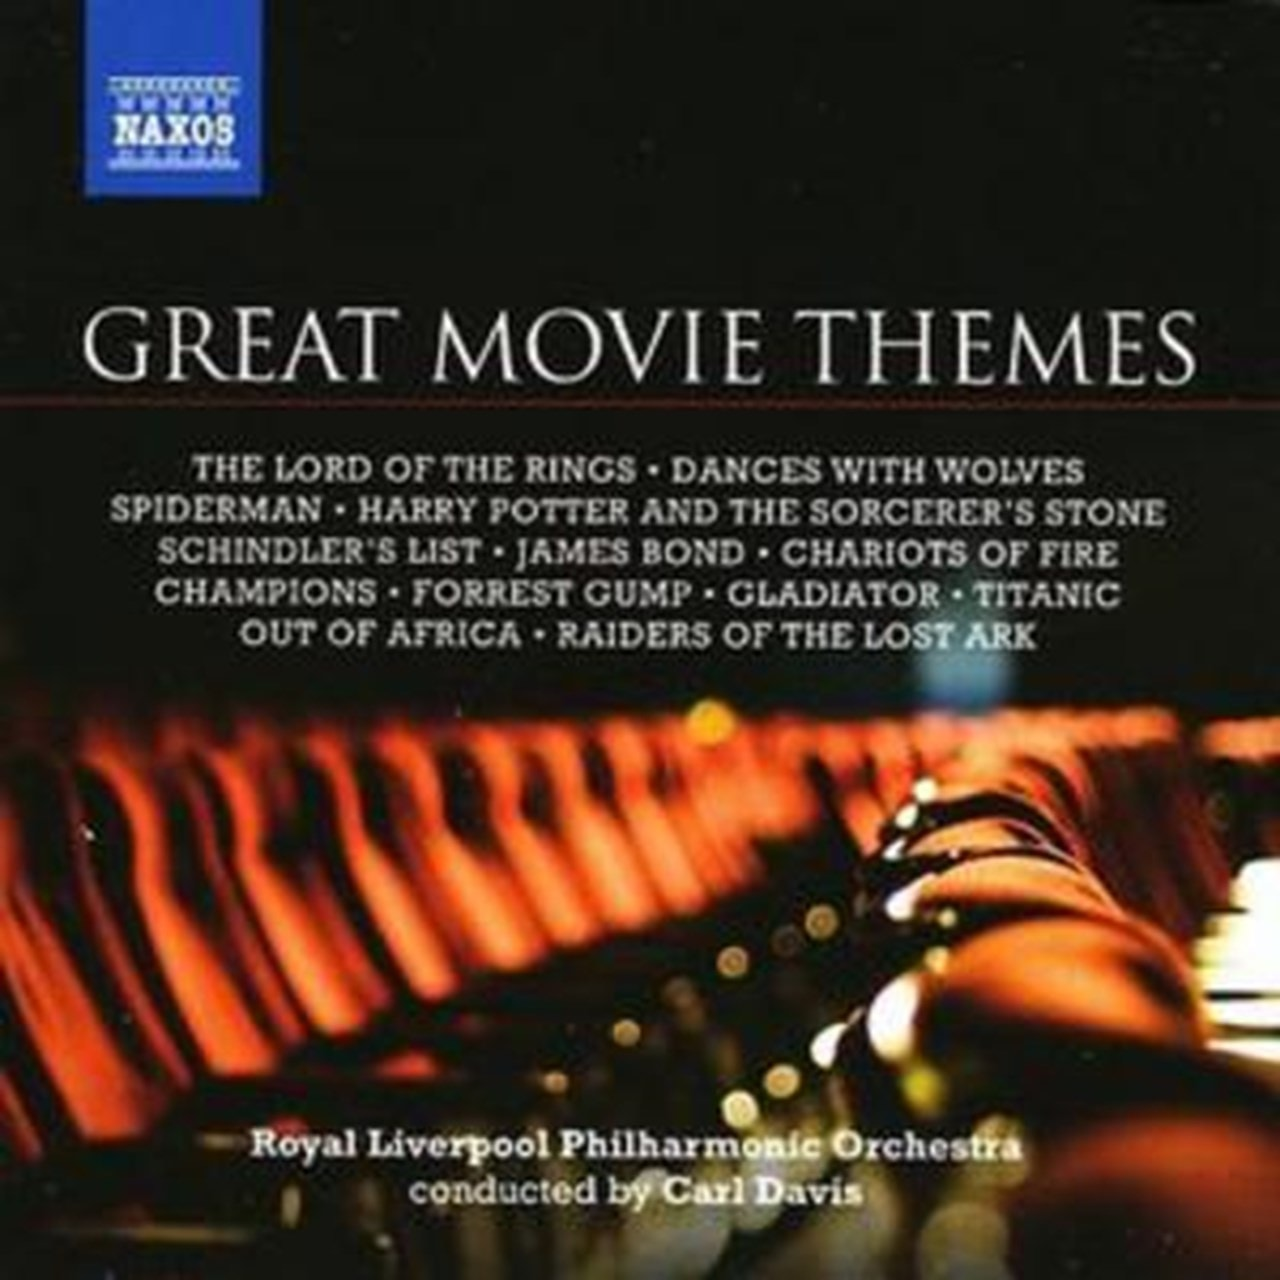 Great Movie Themes - 1